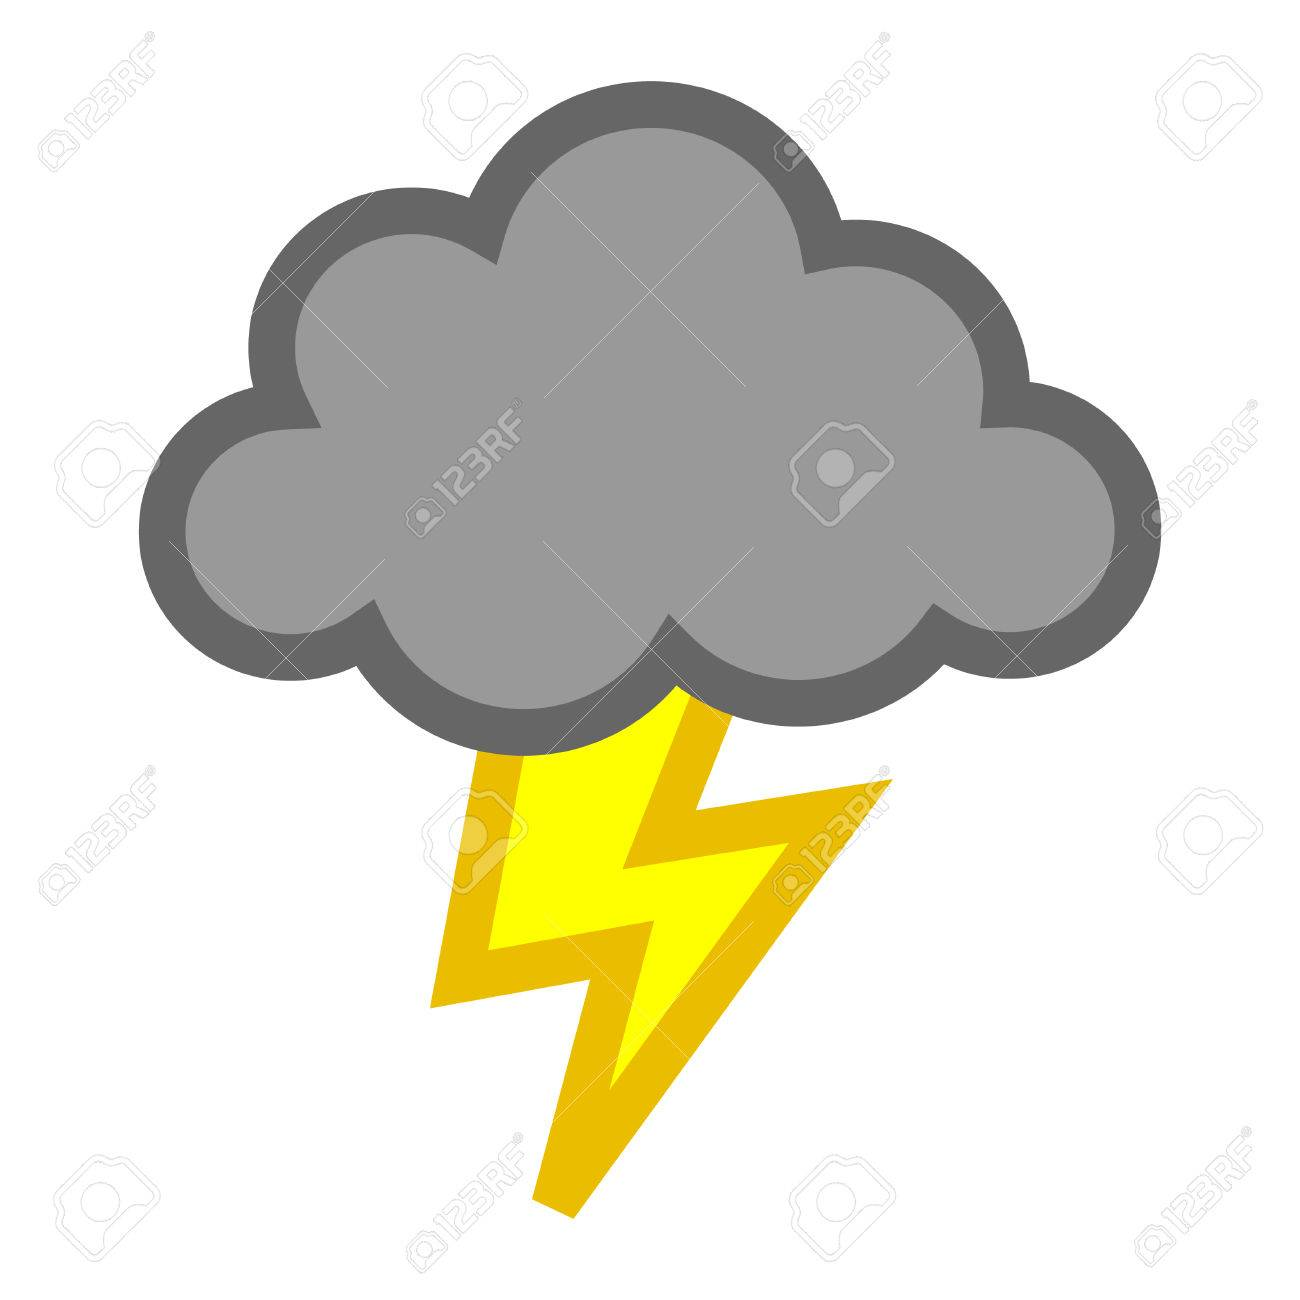 storm cloud lightning bolt royalty free cliparts vectors and stock rh 123rf com storm cloud clipart storm cloud with lightning clipart